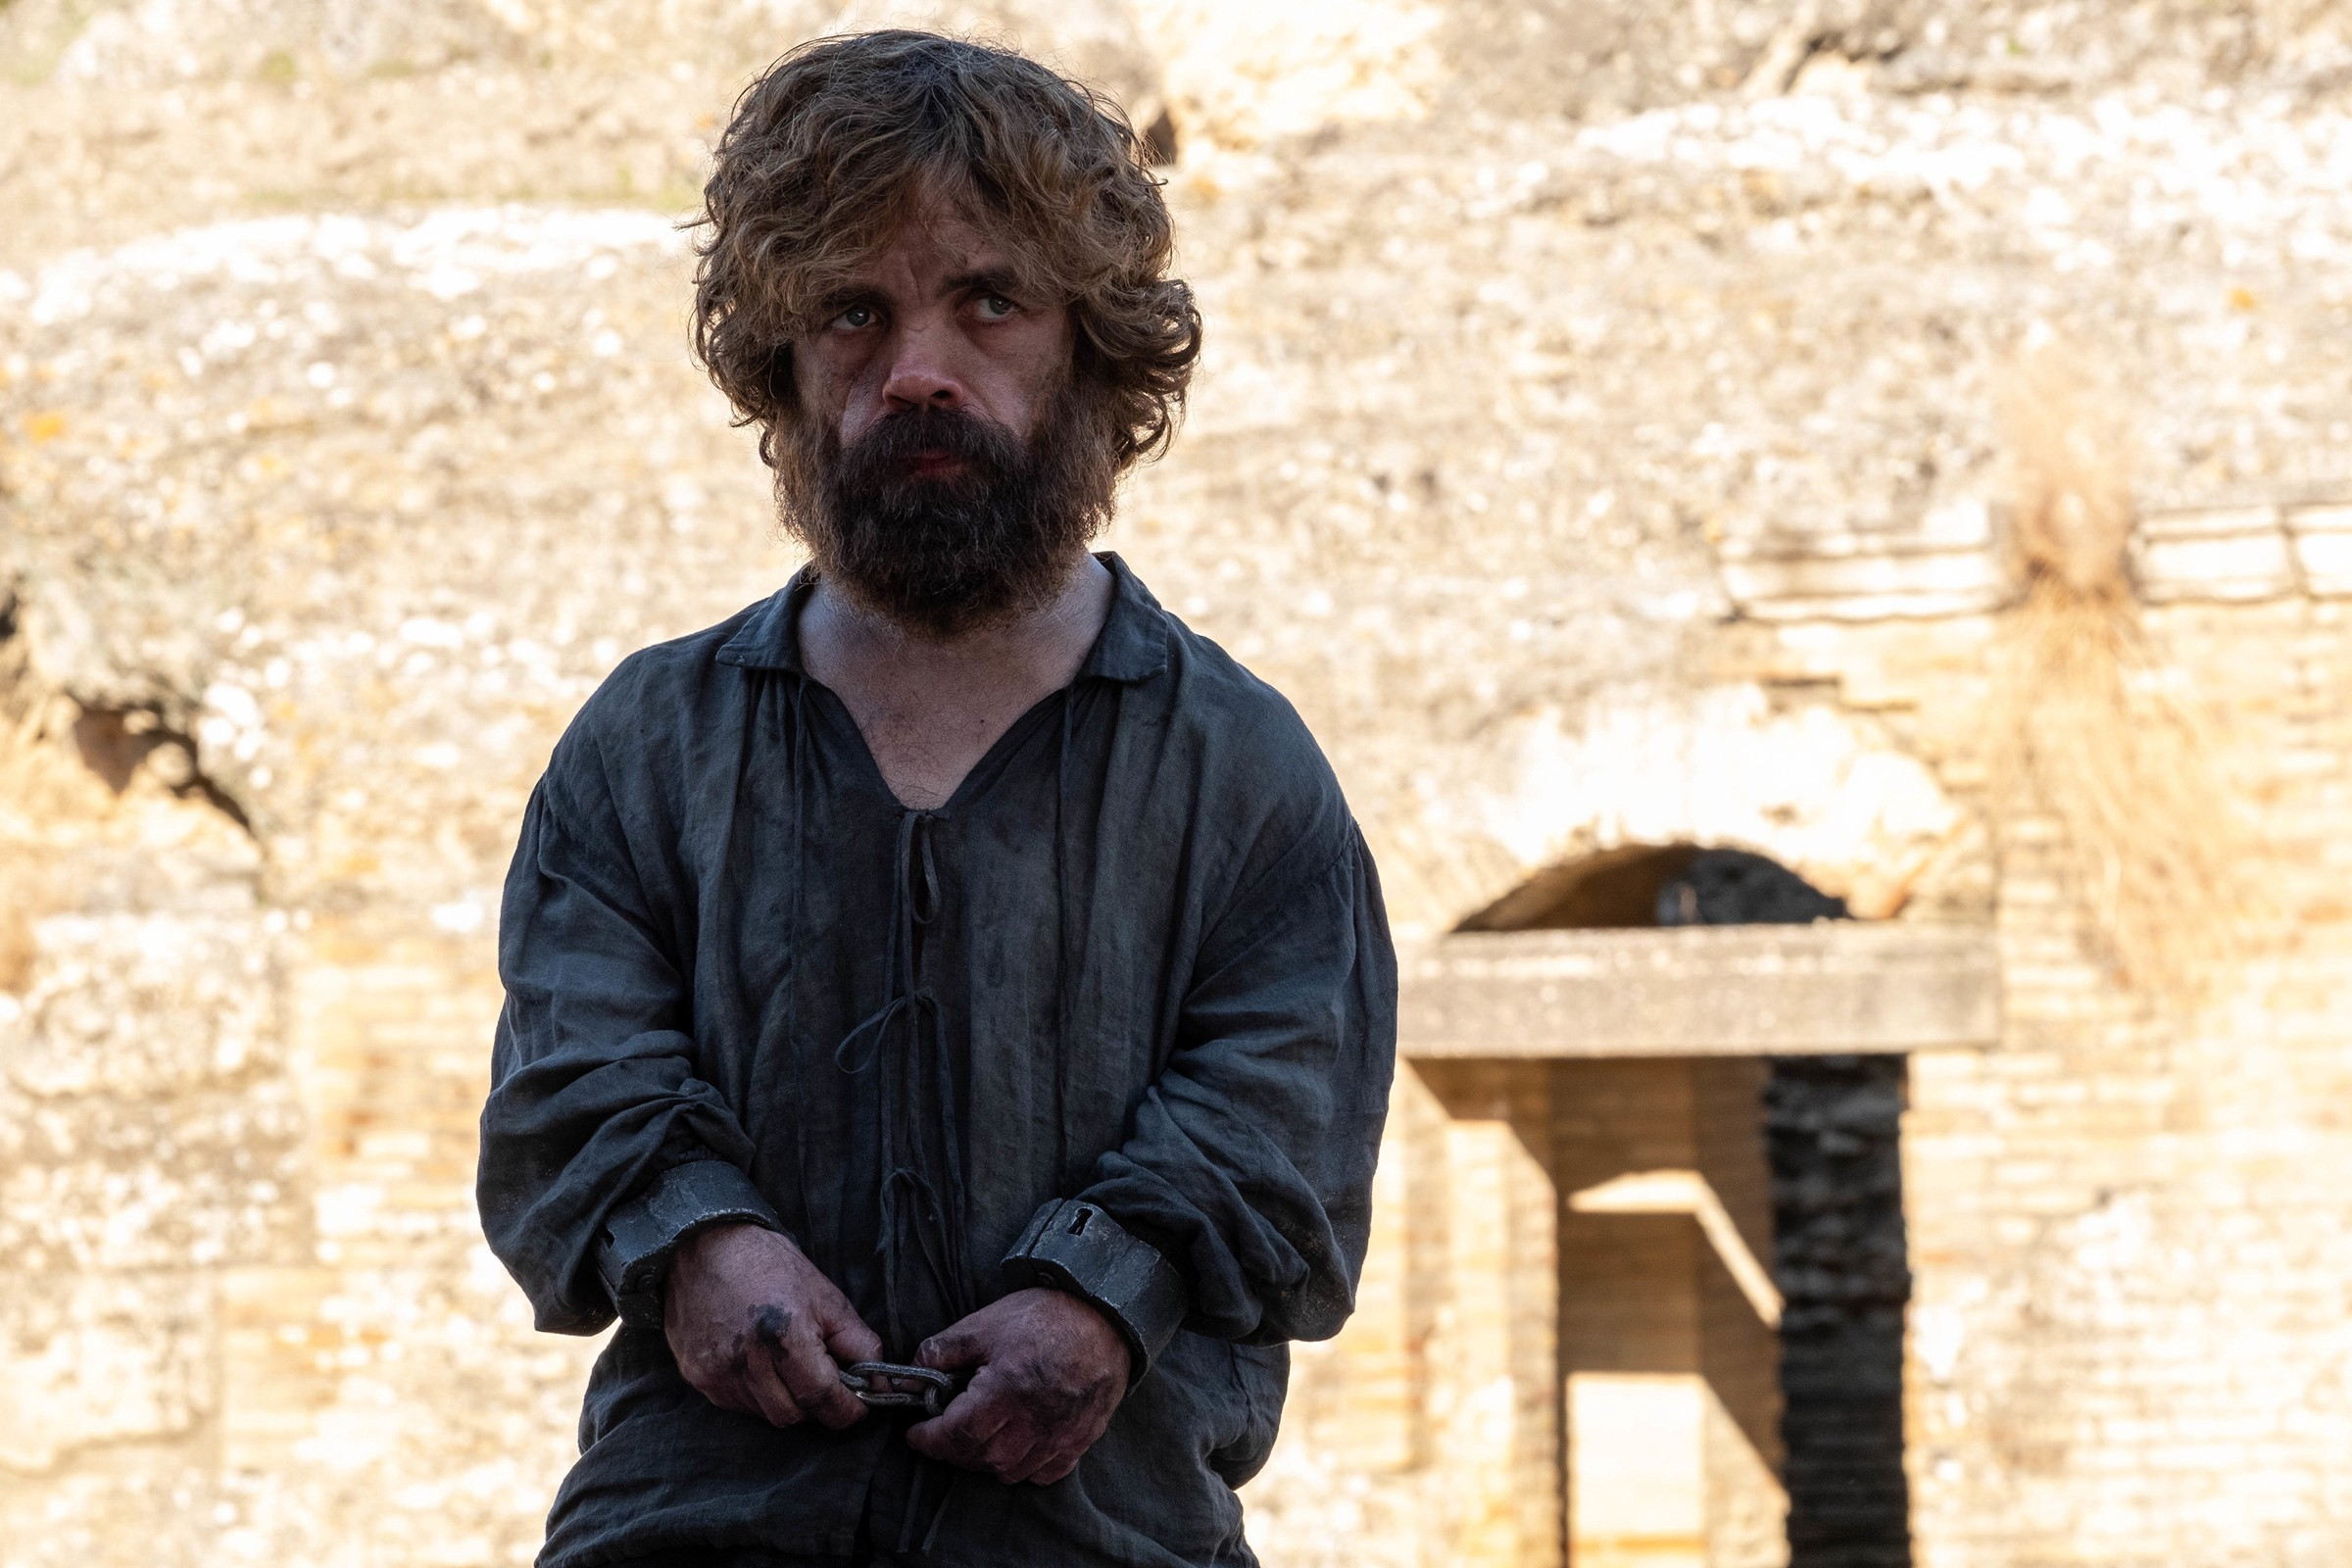 Game Of Thrones Season 8 Episode 6 Duty Is The Death Of Love